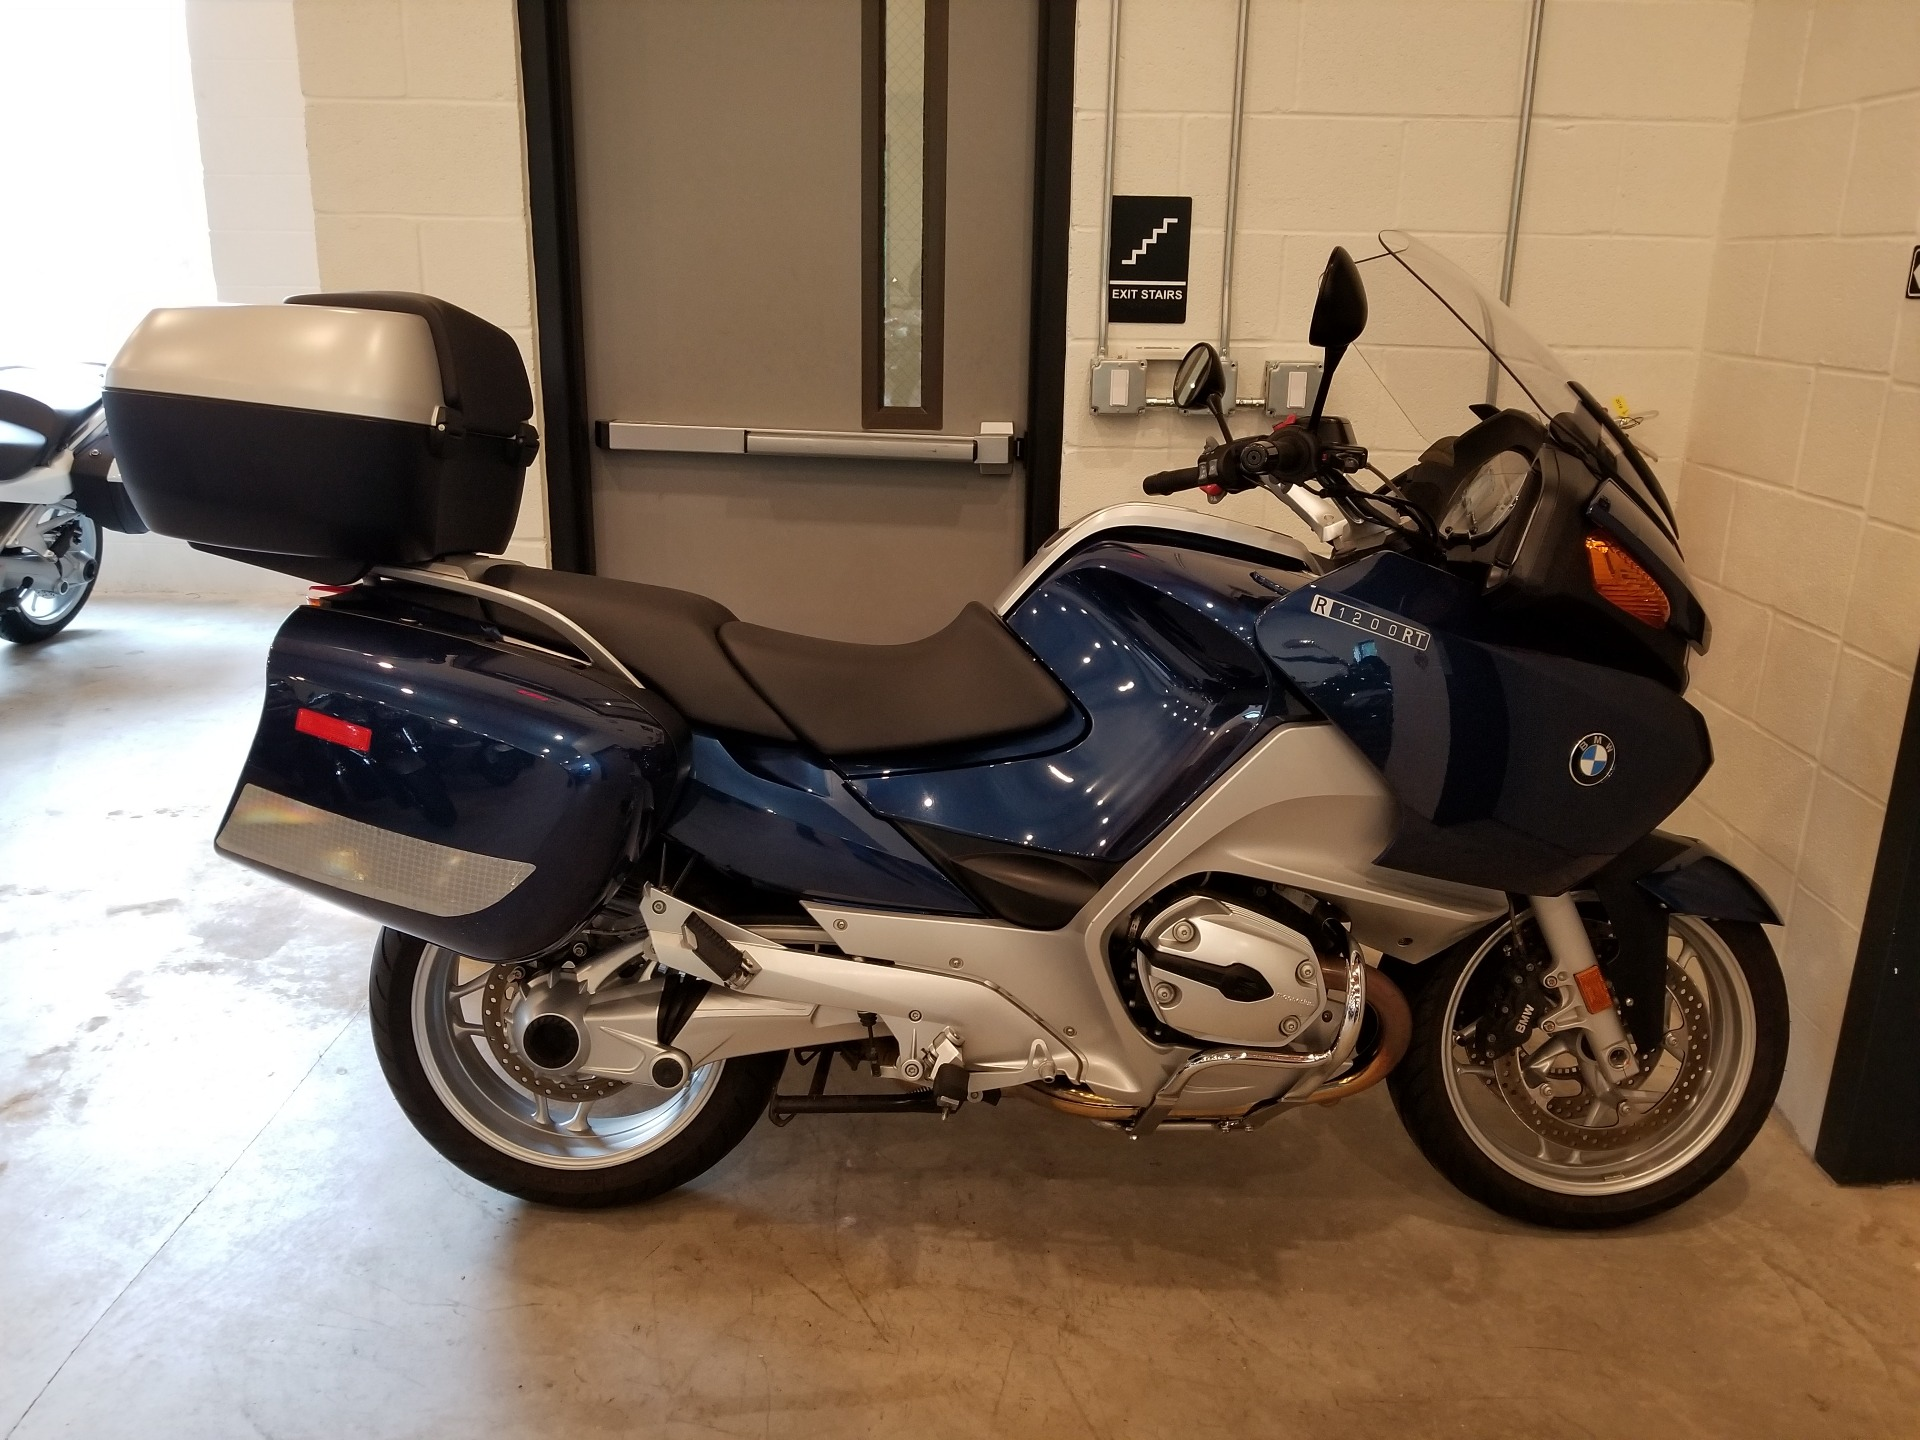 2007 Bmw R 1200 Rt For Sale Port Clinton Pa 130901